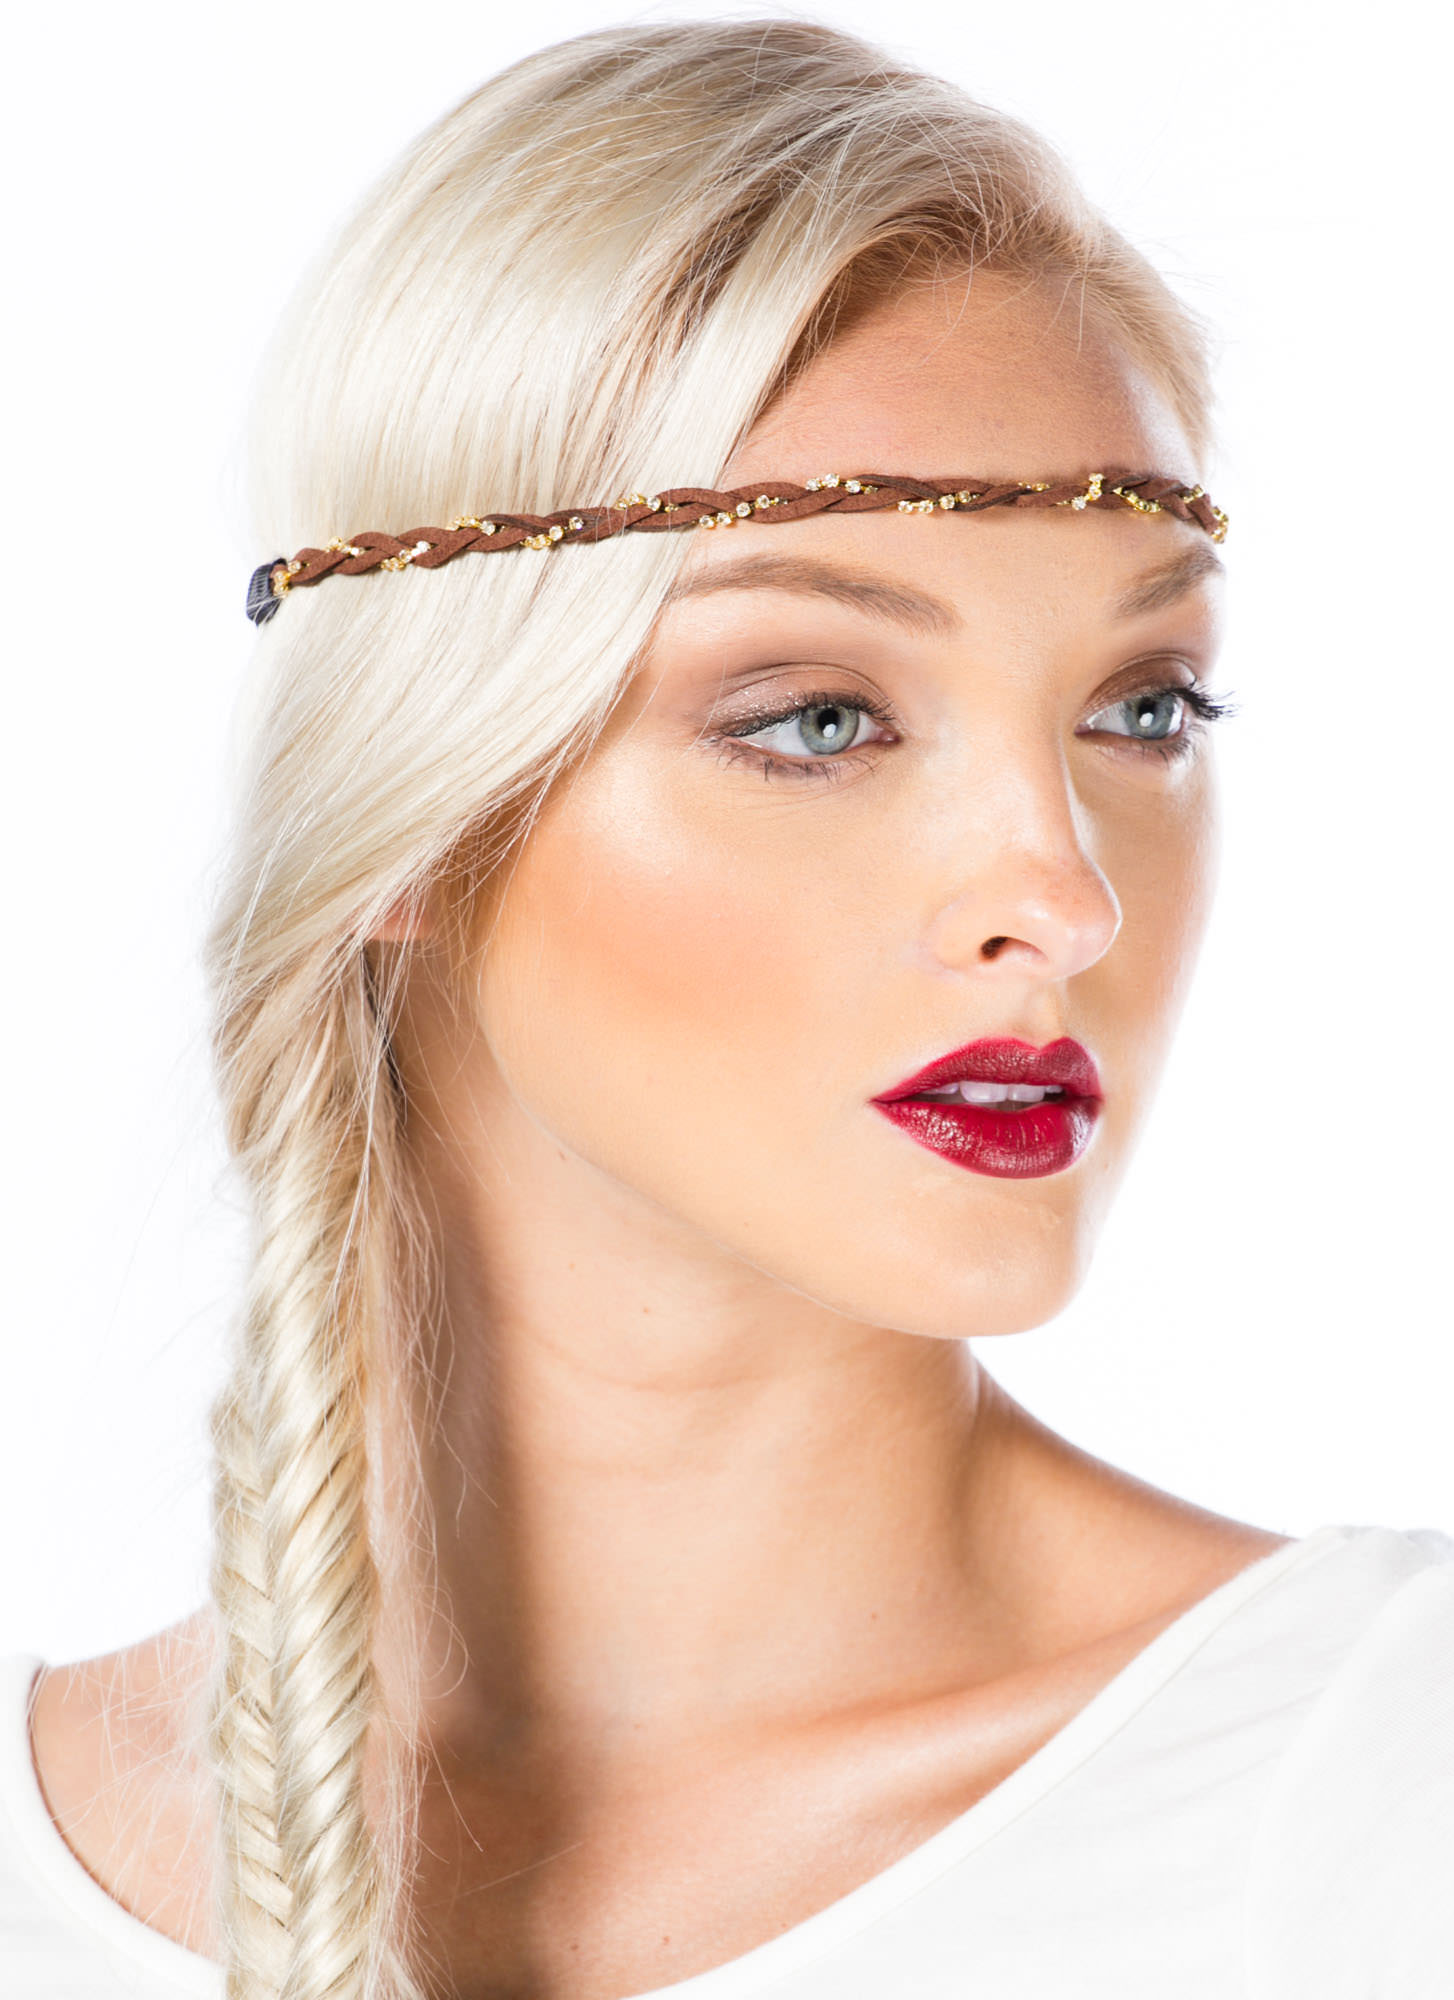 Jeweled Braid Headband CAMELGOLD